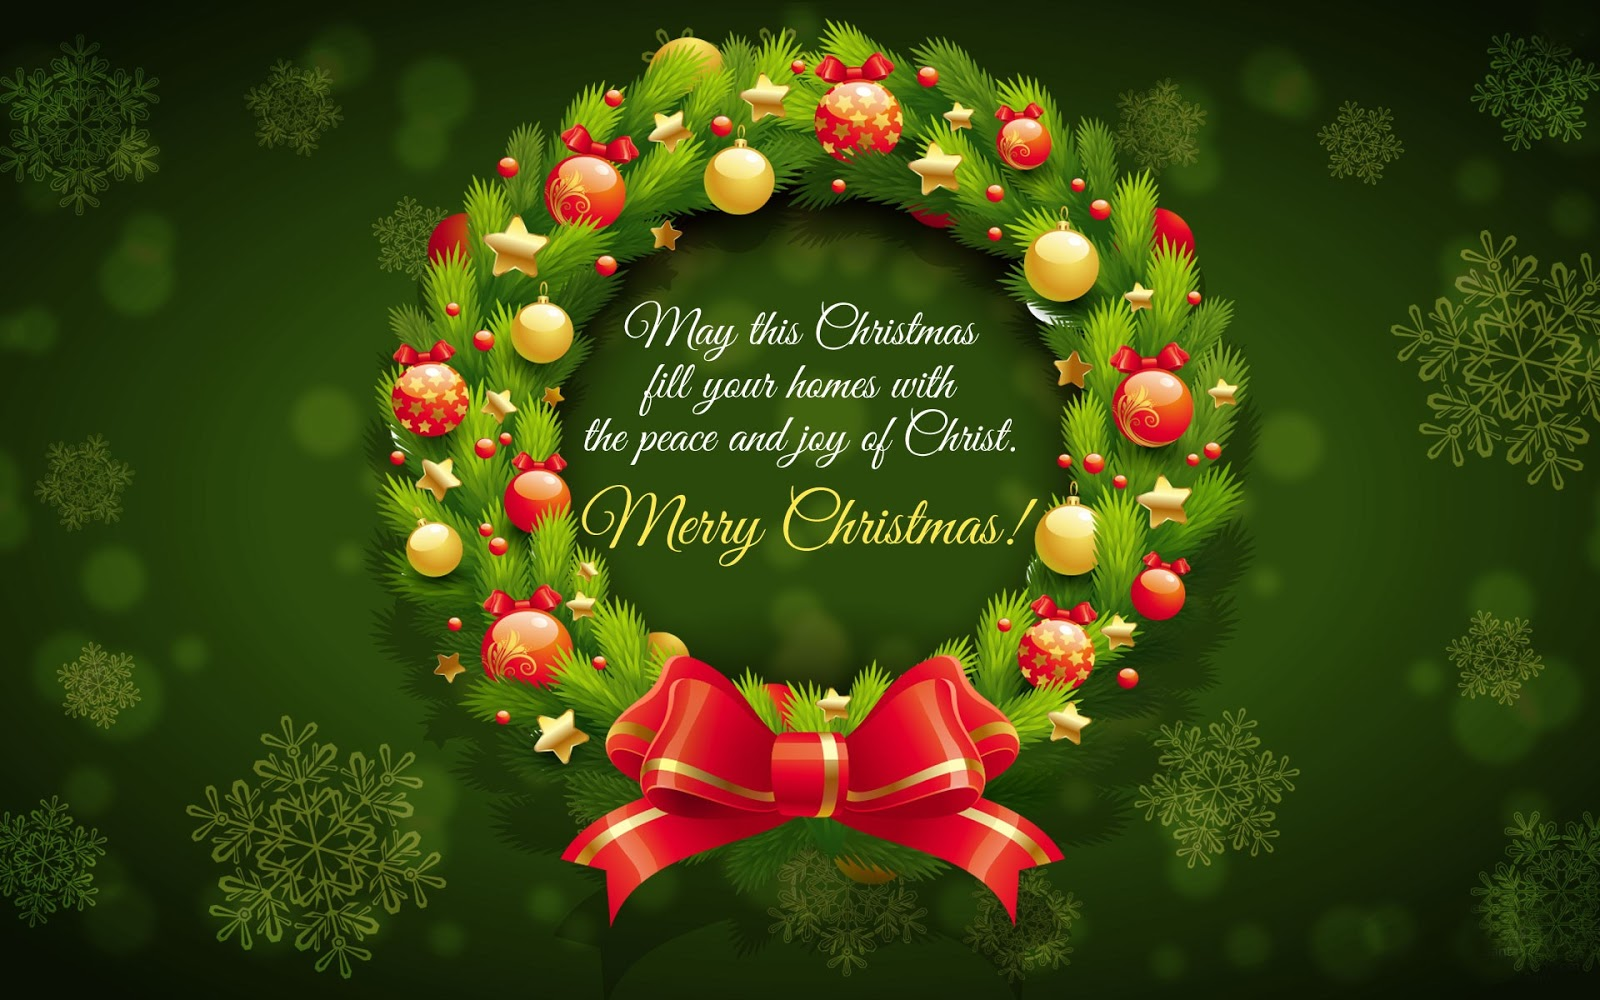 Quotes Christmas Top 10 Merry Christmas Wishes Quotes